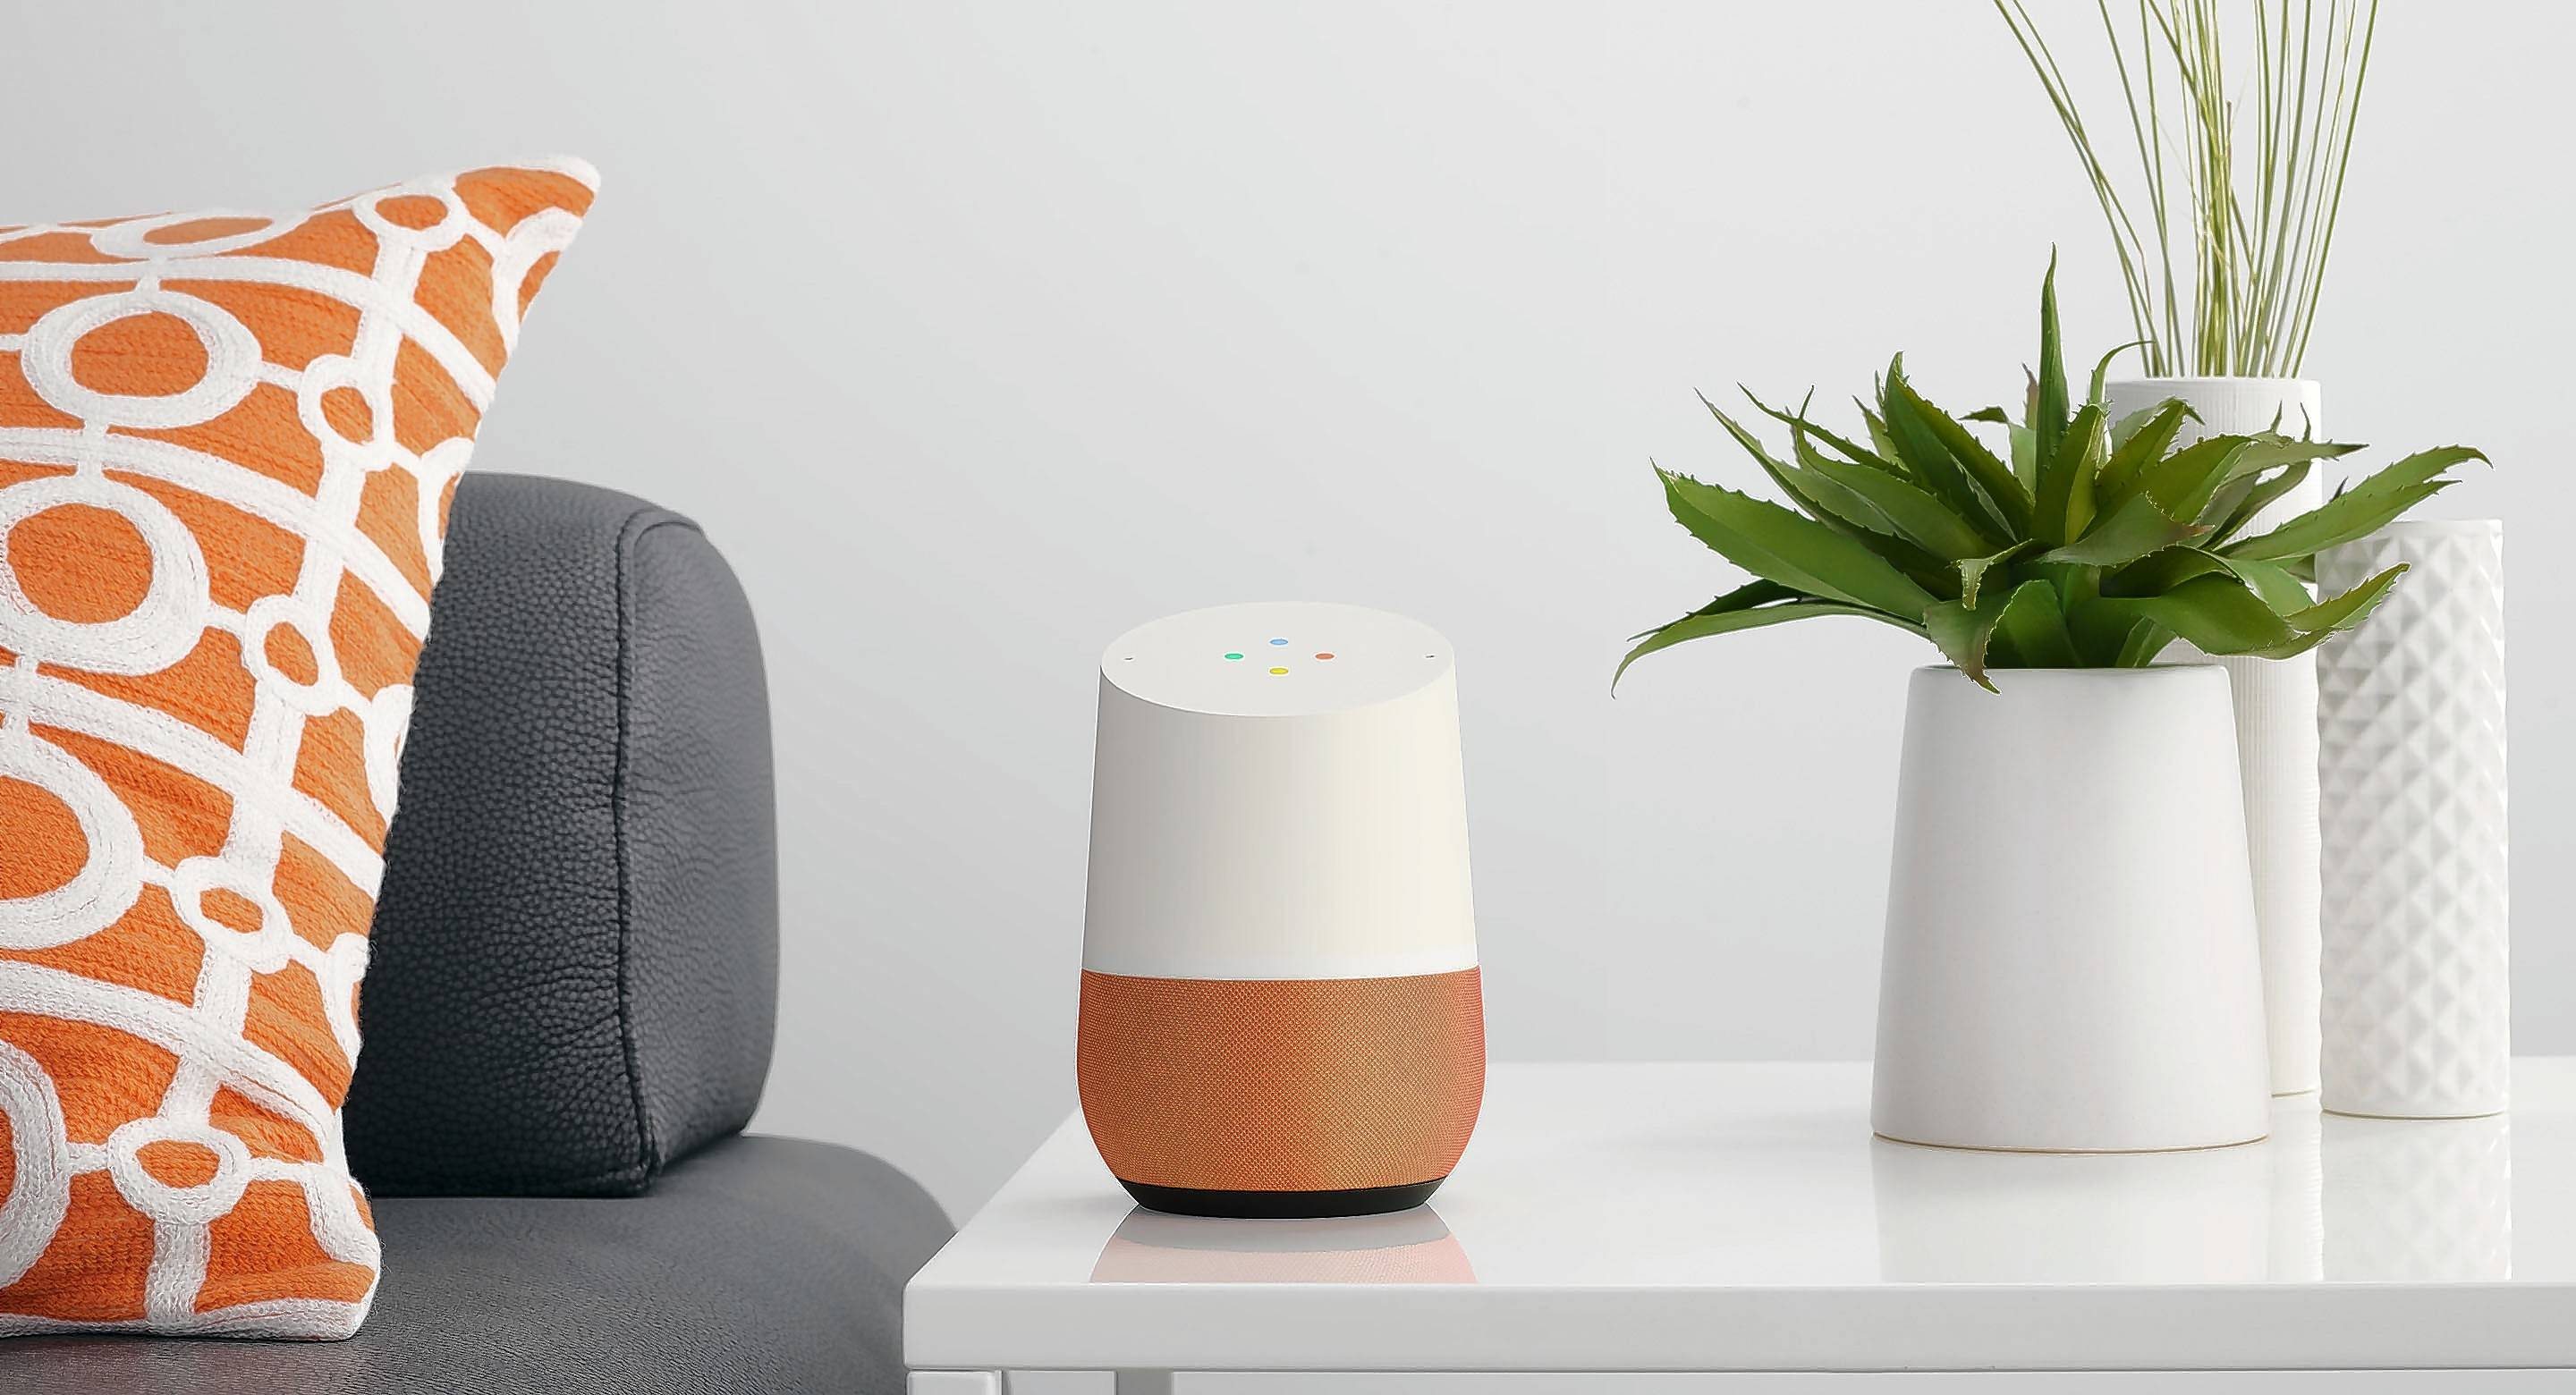 Devices such as the Google Home let people check the weather or their personal calendar with simple voice commands. Many of these devices are constantly listening for your commands; when they receive them, they connect to corporate servers to carry them out.